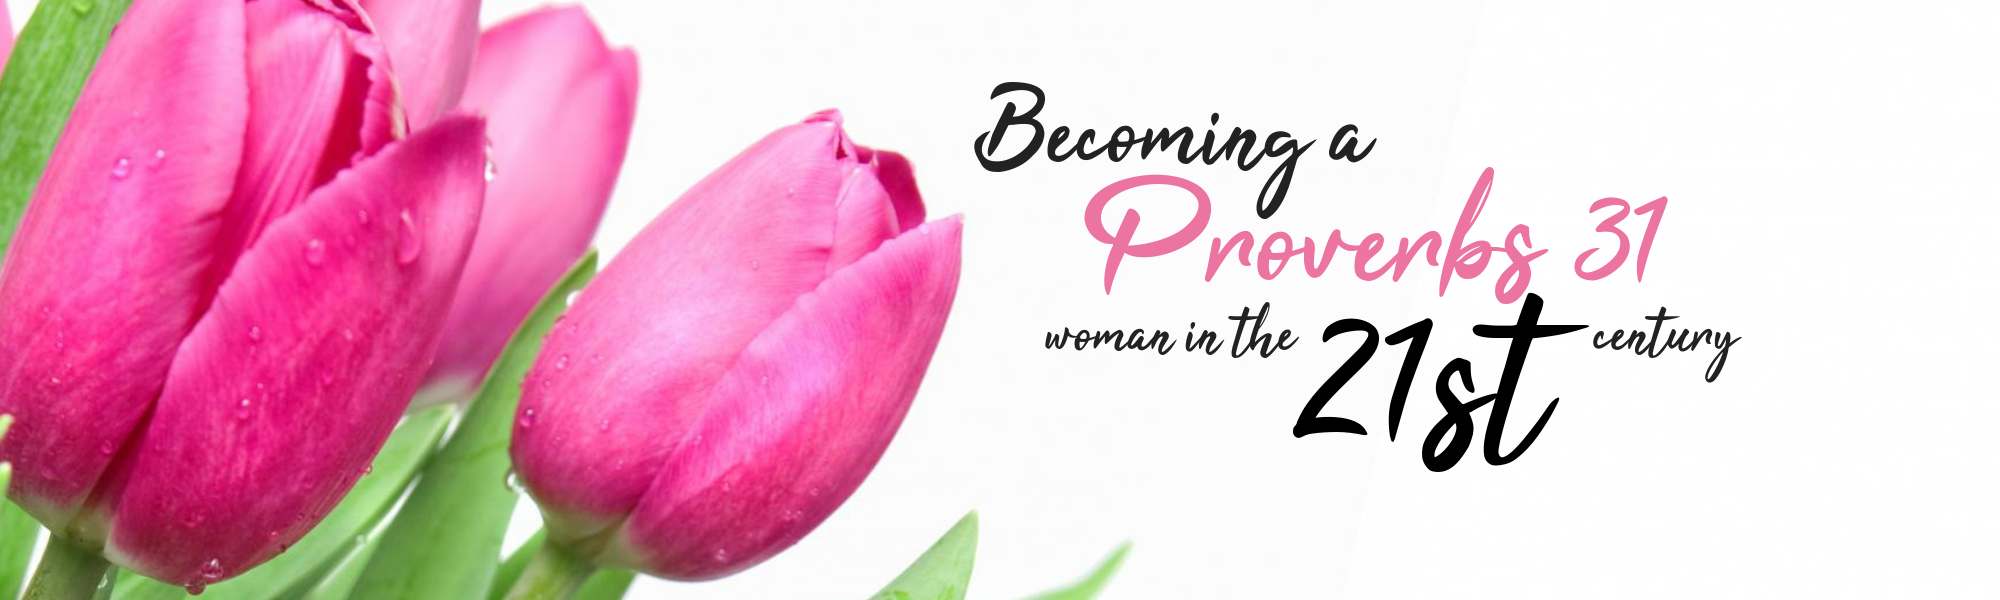 Becoming a proverbs 31 woman in the 21st century